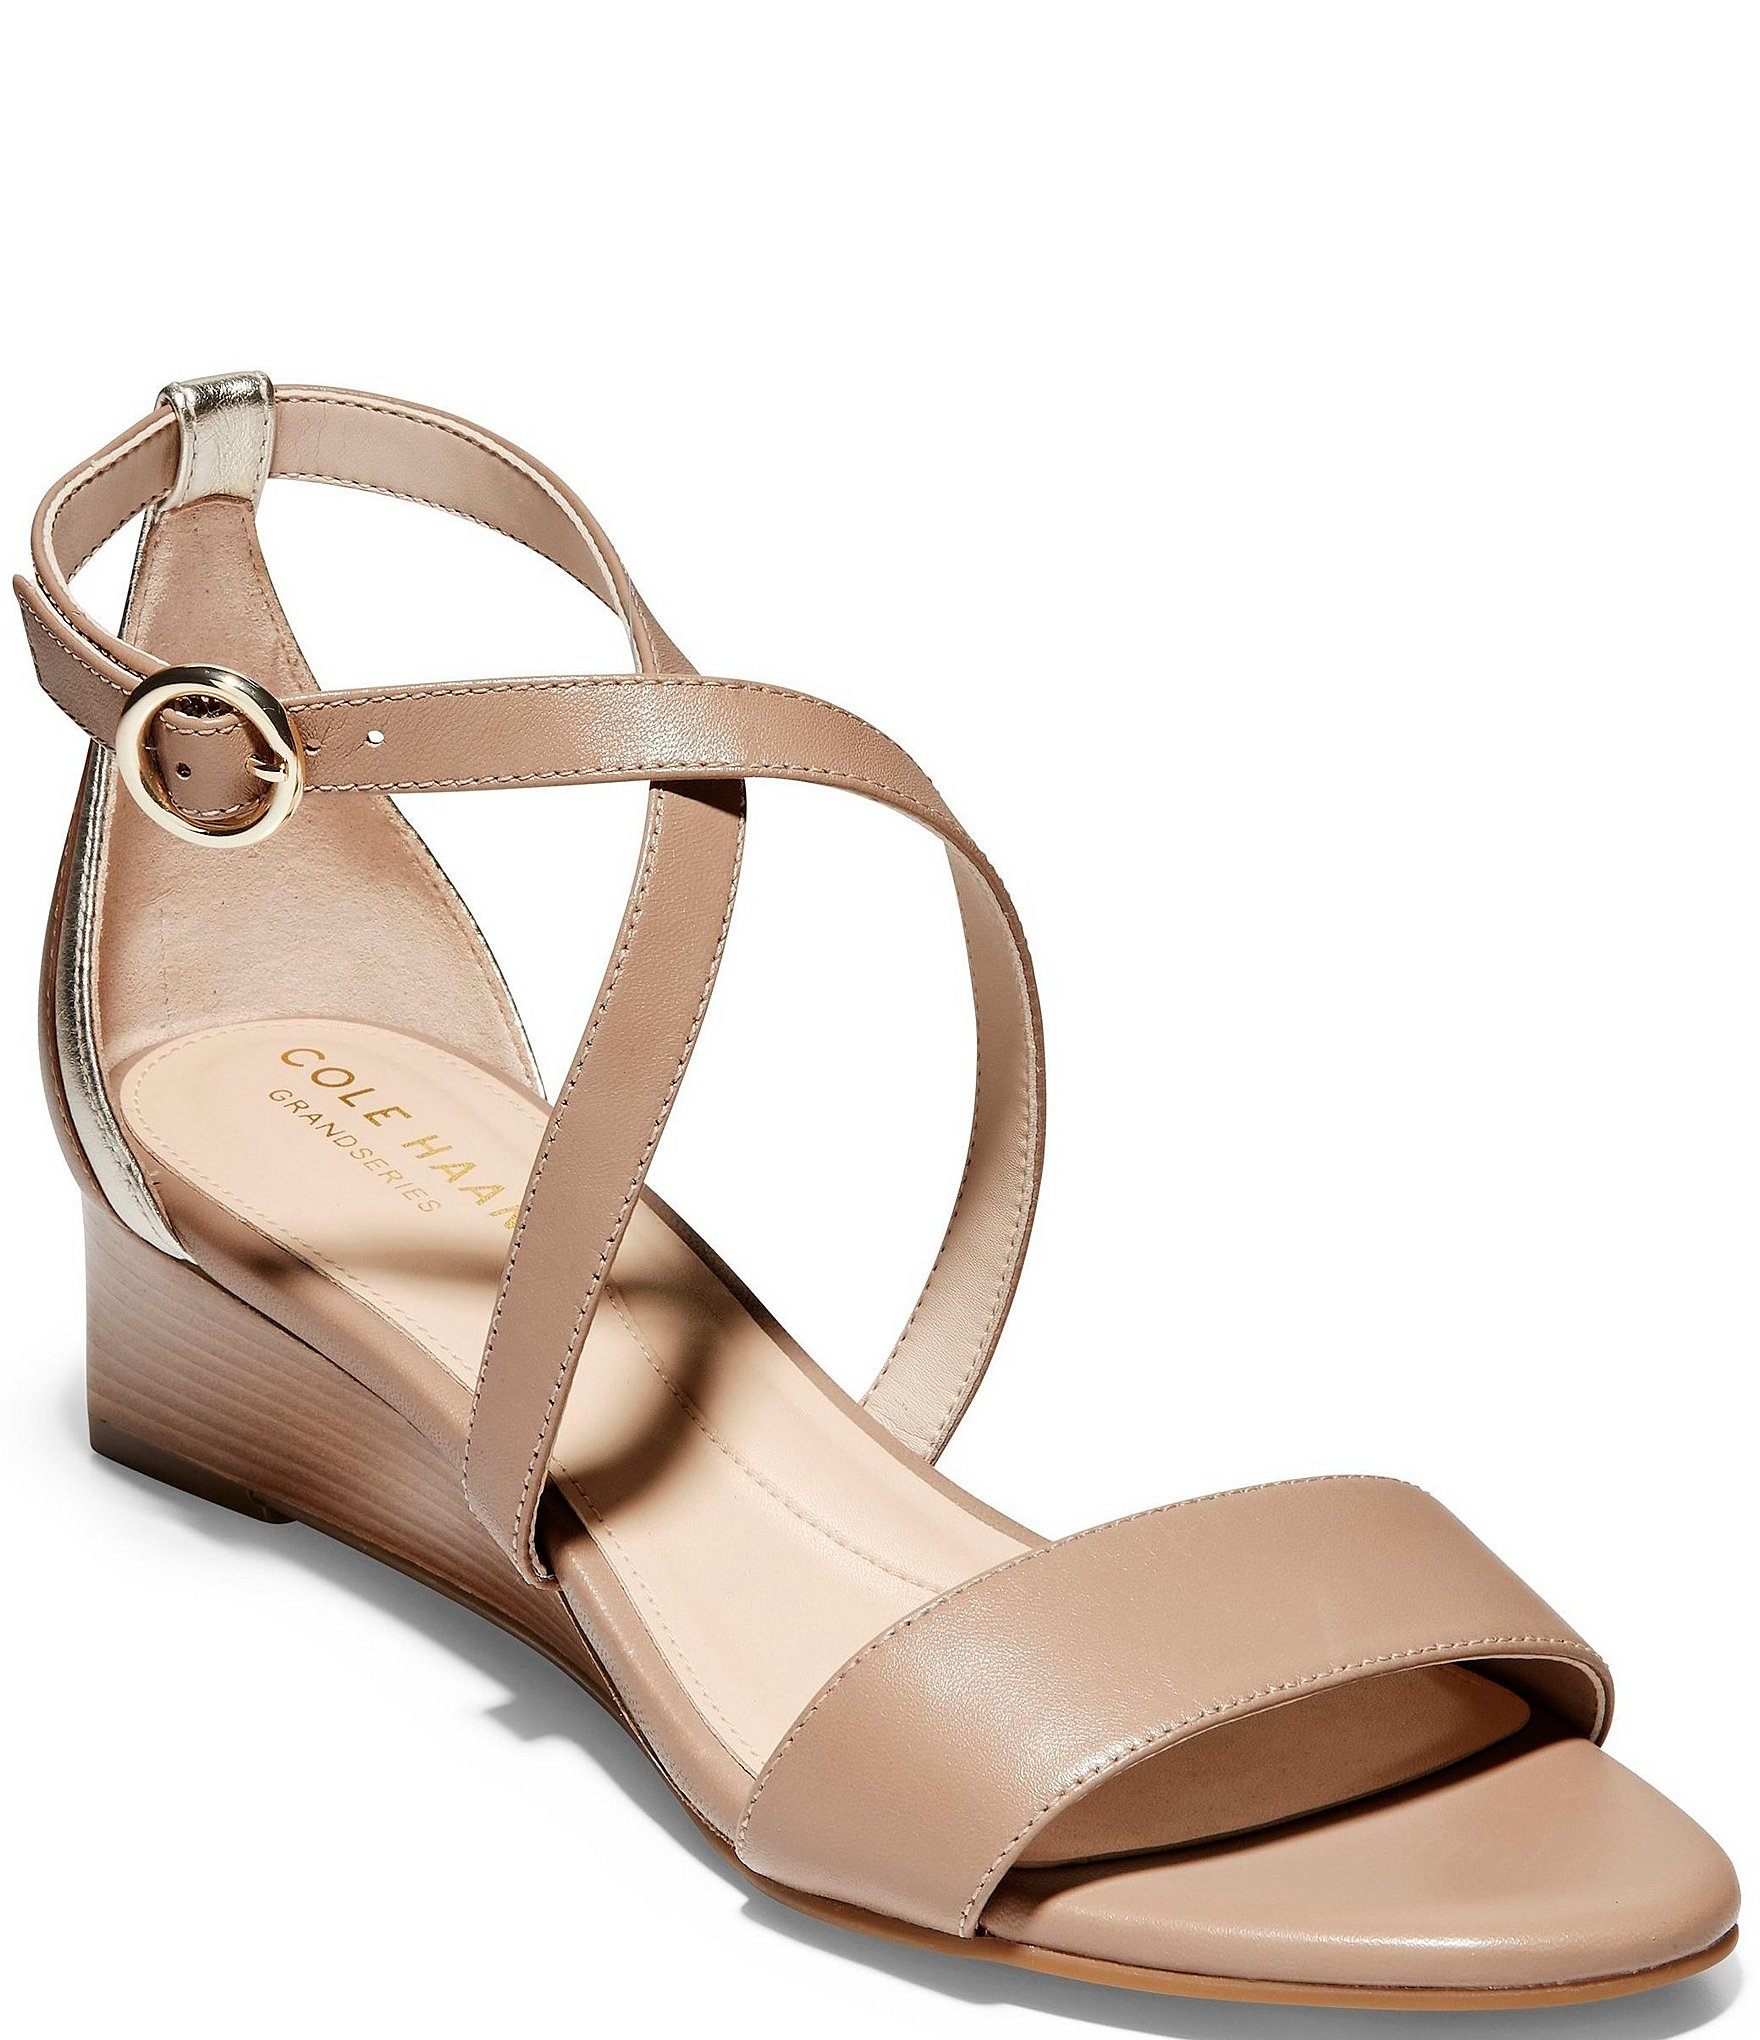 Cole Haan Hollie Leather Wedge Sandals